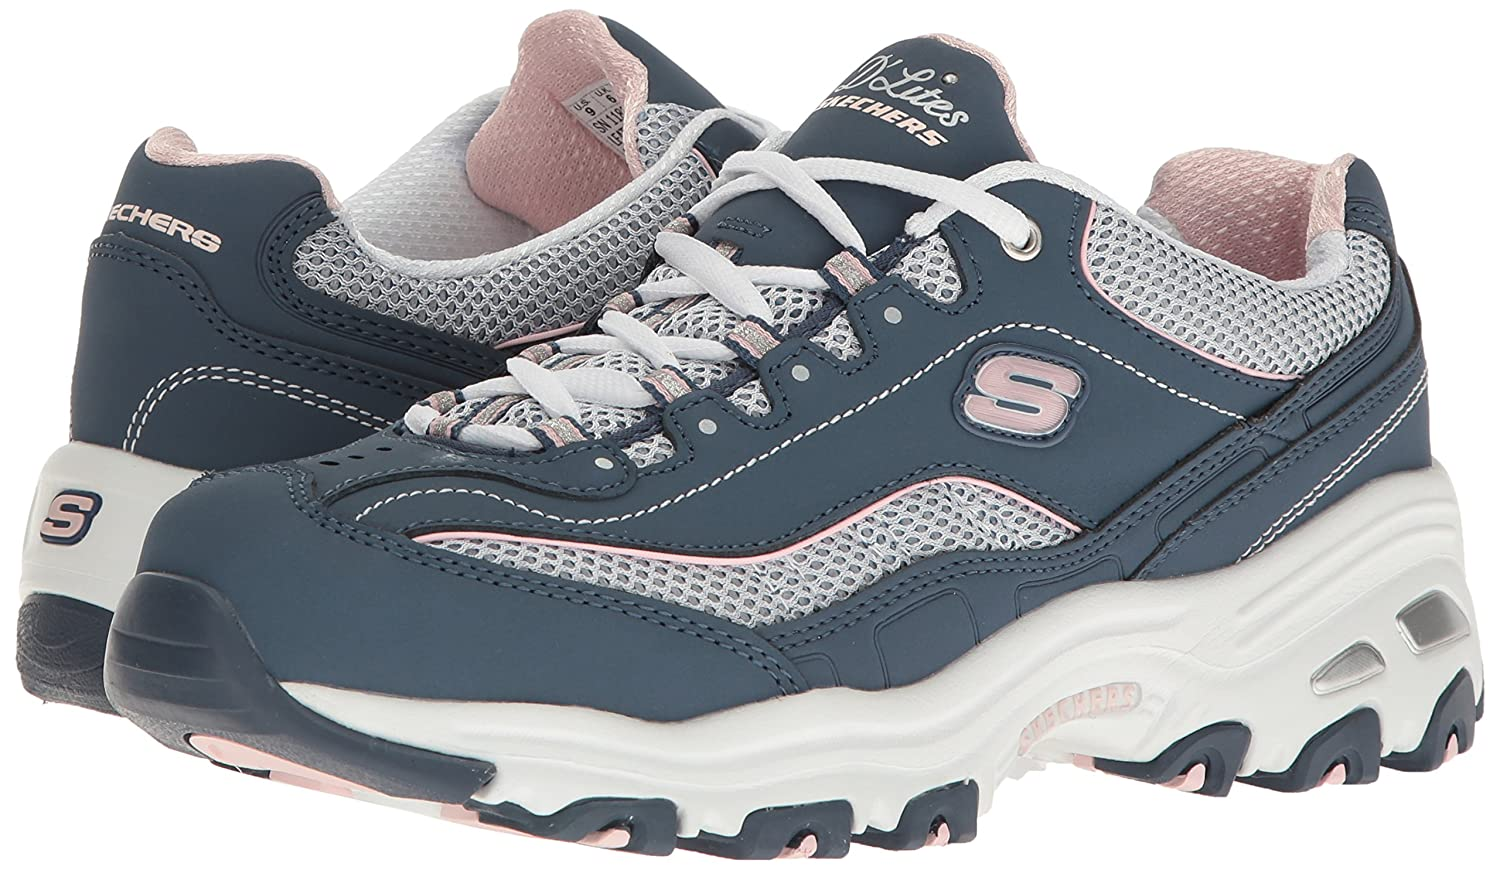 Skechers Kvinners D'lites-life Saver Low-top Sneakers Fnp19aR